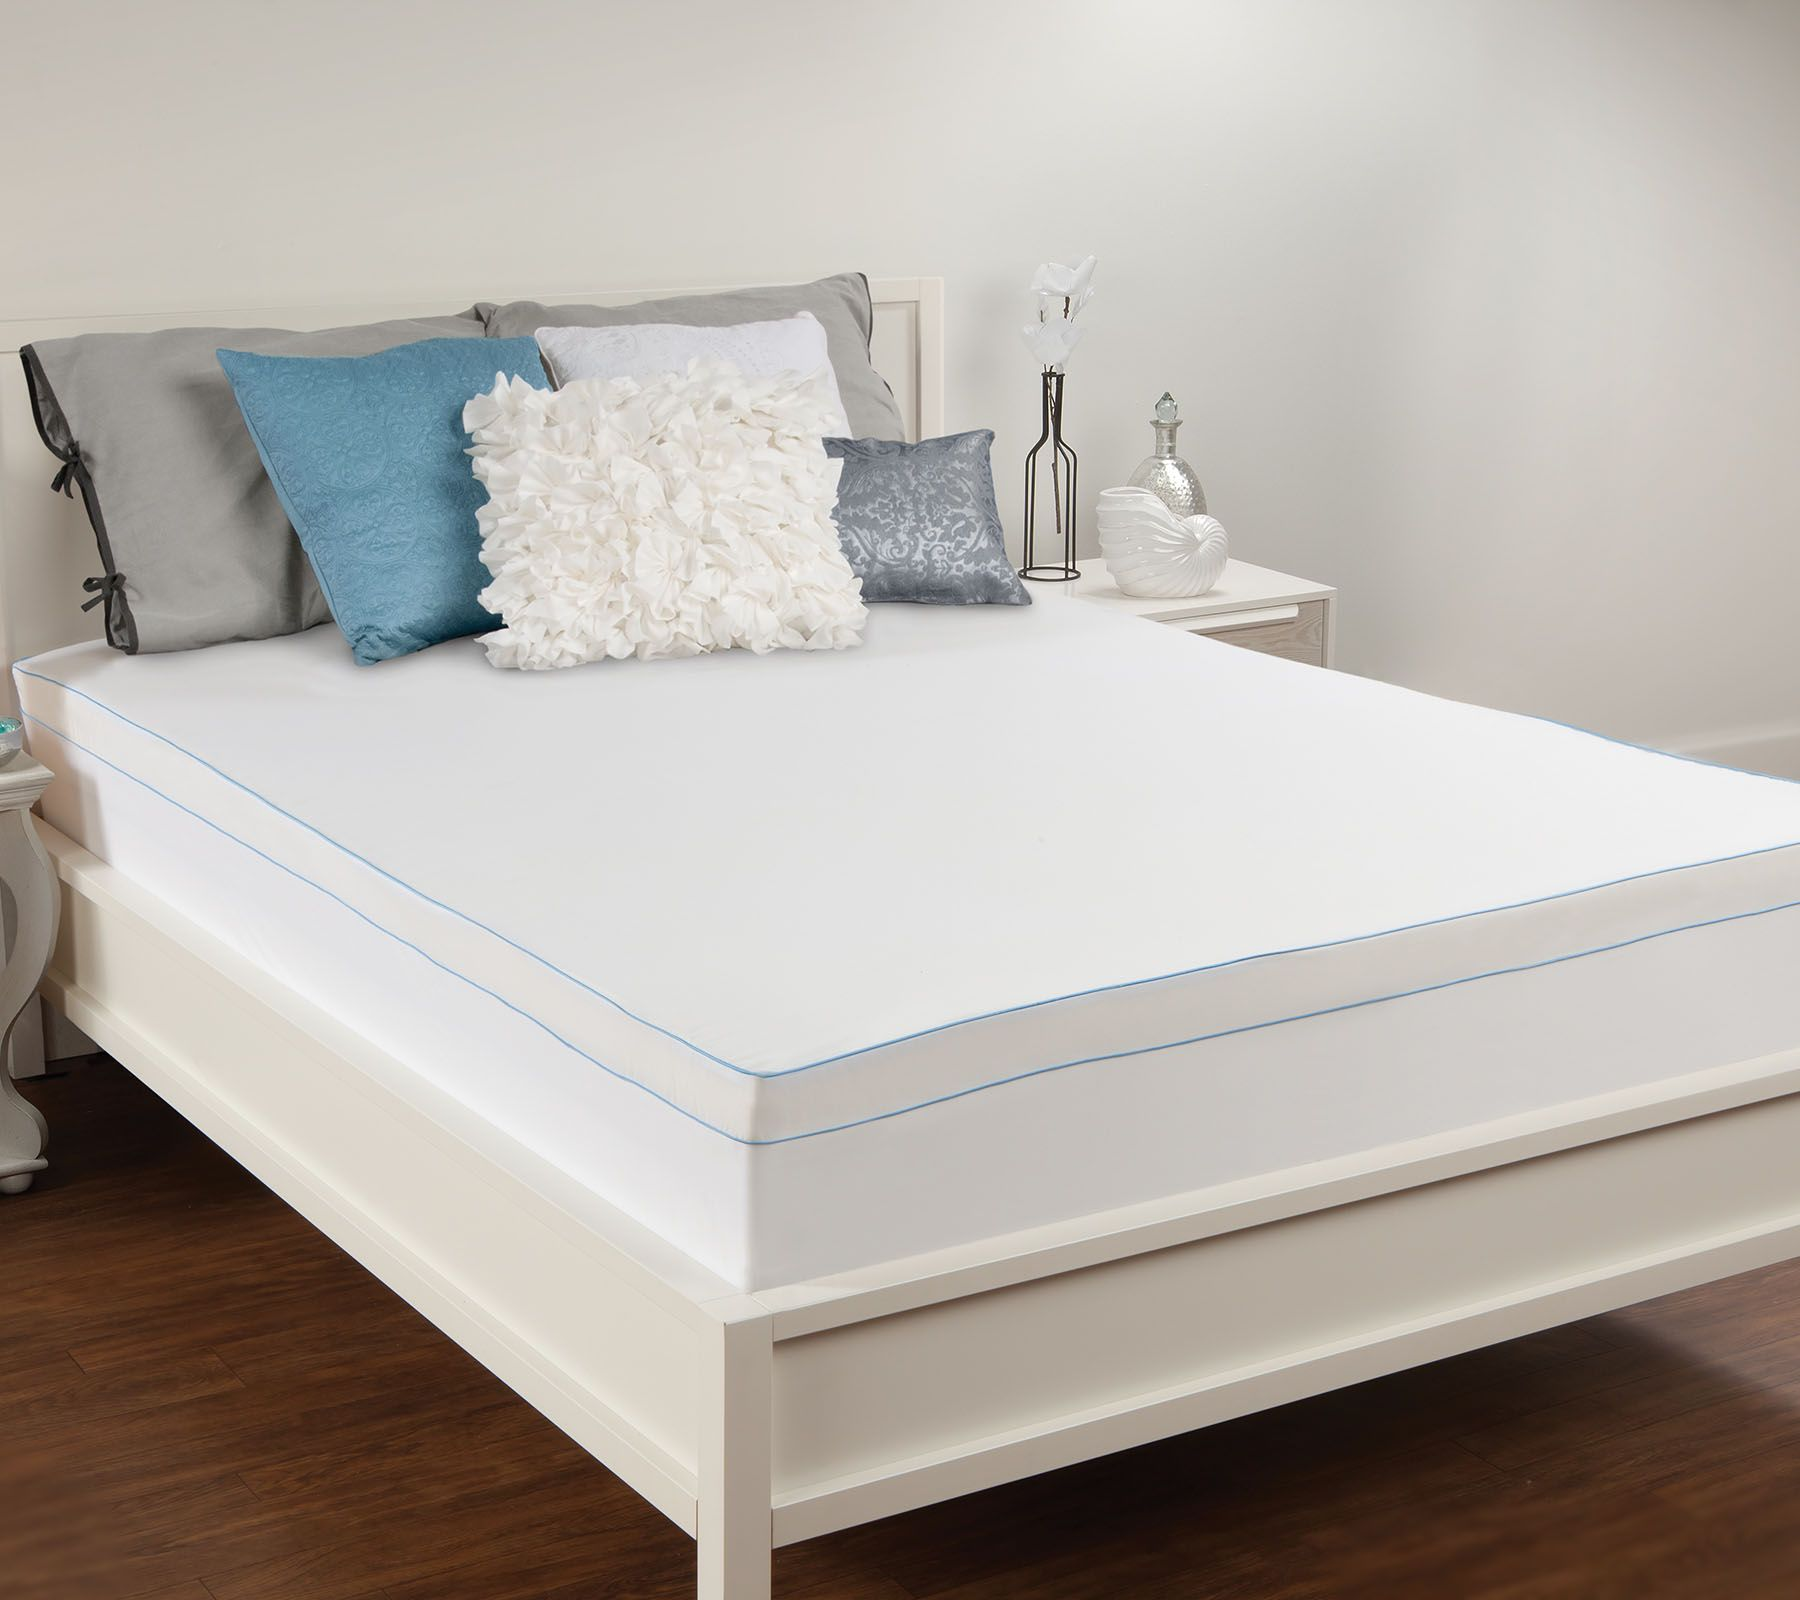 Comfort evolution 3quot memory foam mattress topper qvccom for Are memory foam mattresses comfortable